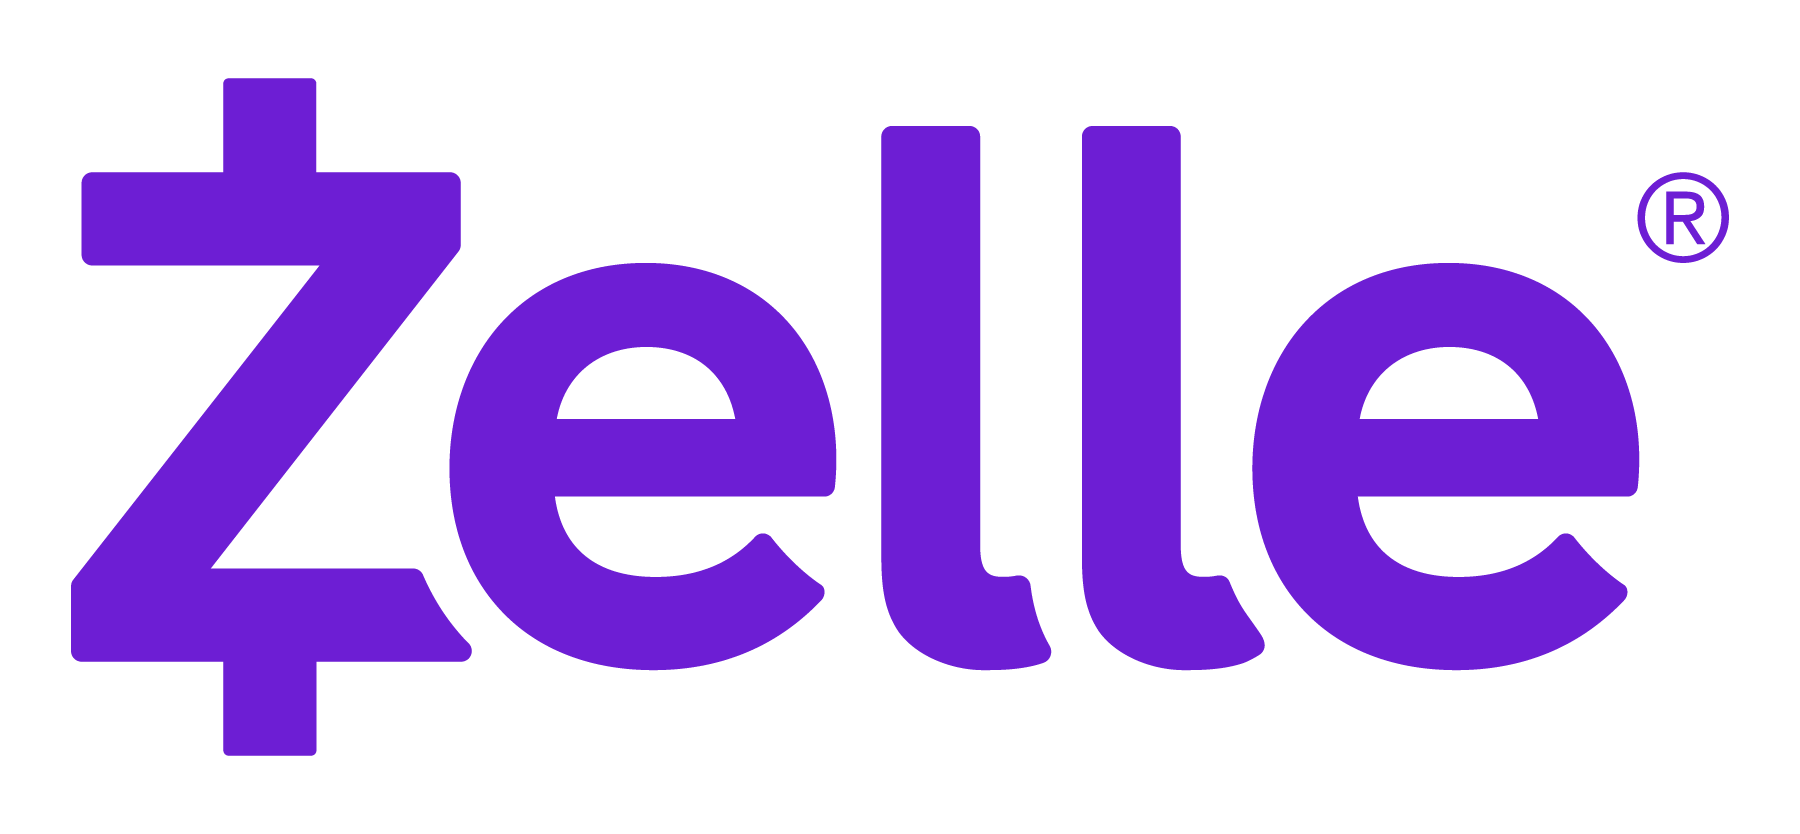 Zelle logo no tagline RGB purple